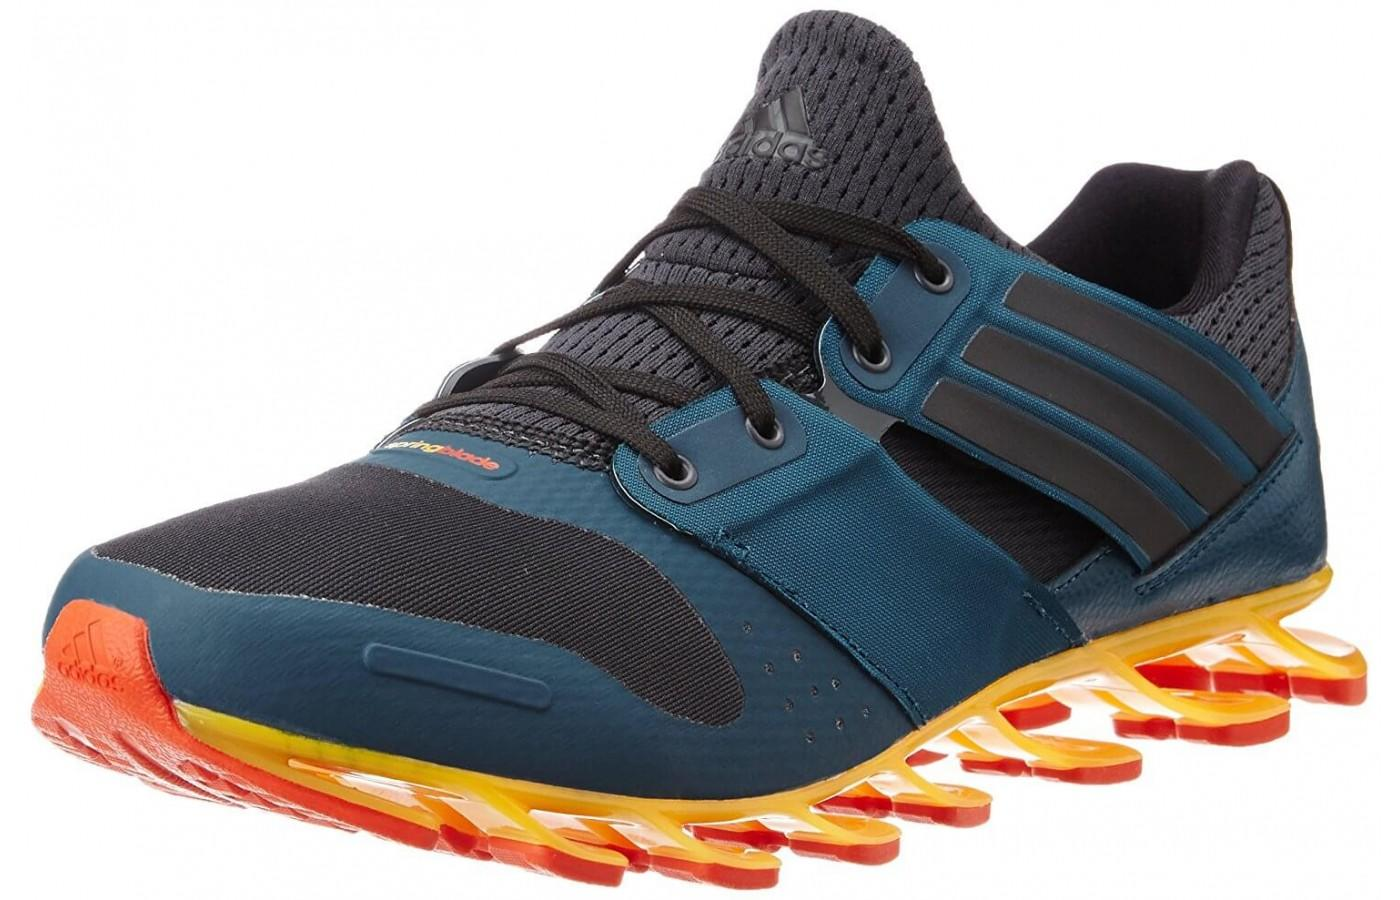 22ed86633f2b Adidas Springblade Solyce - To Buy or Not in Apr 2019